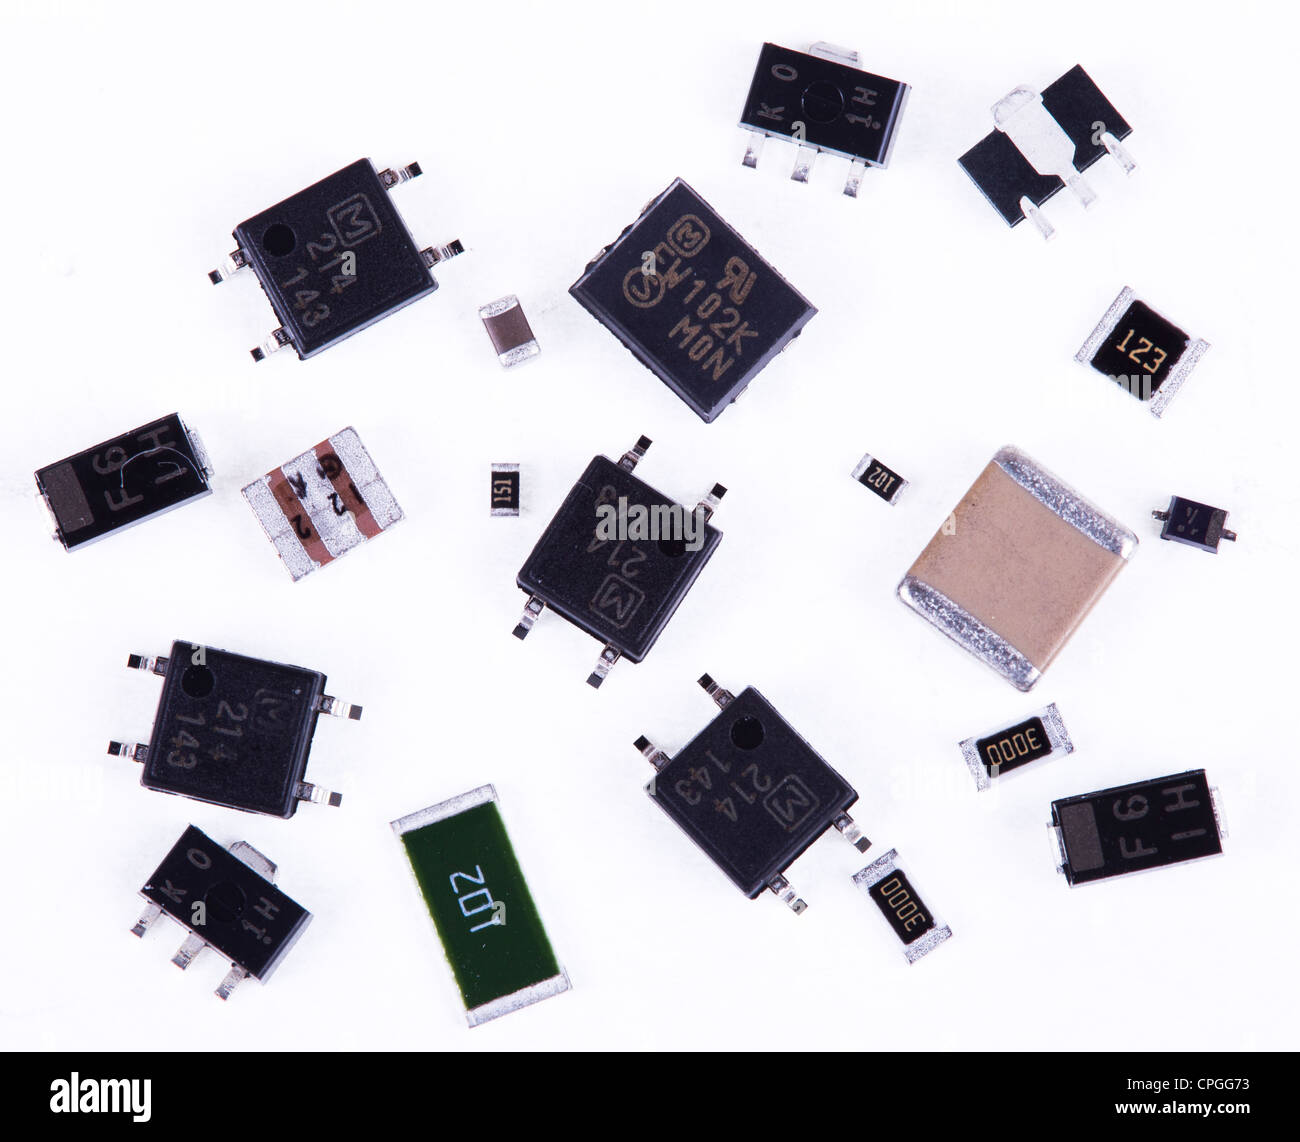 SMT SMD components used in the electronics industry in the assembly of printed circuit boards PCB's. - Stock Image